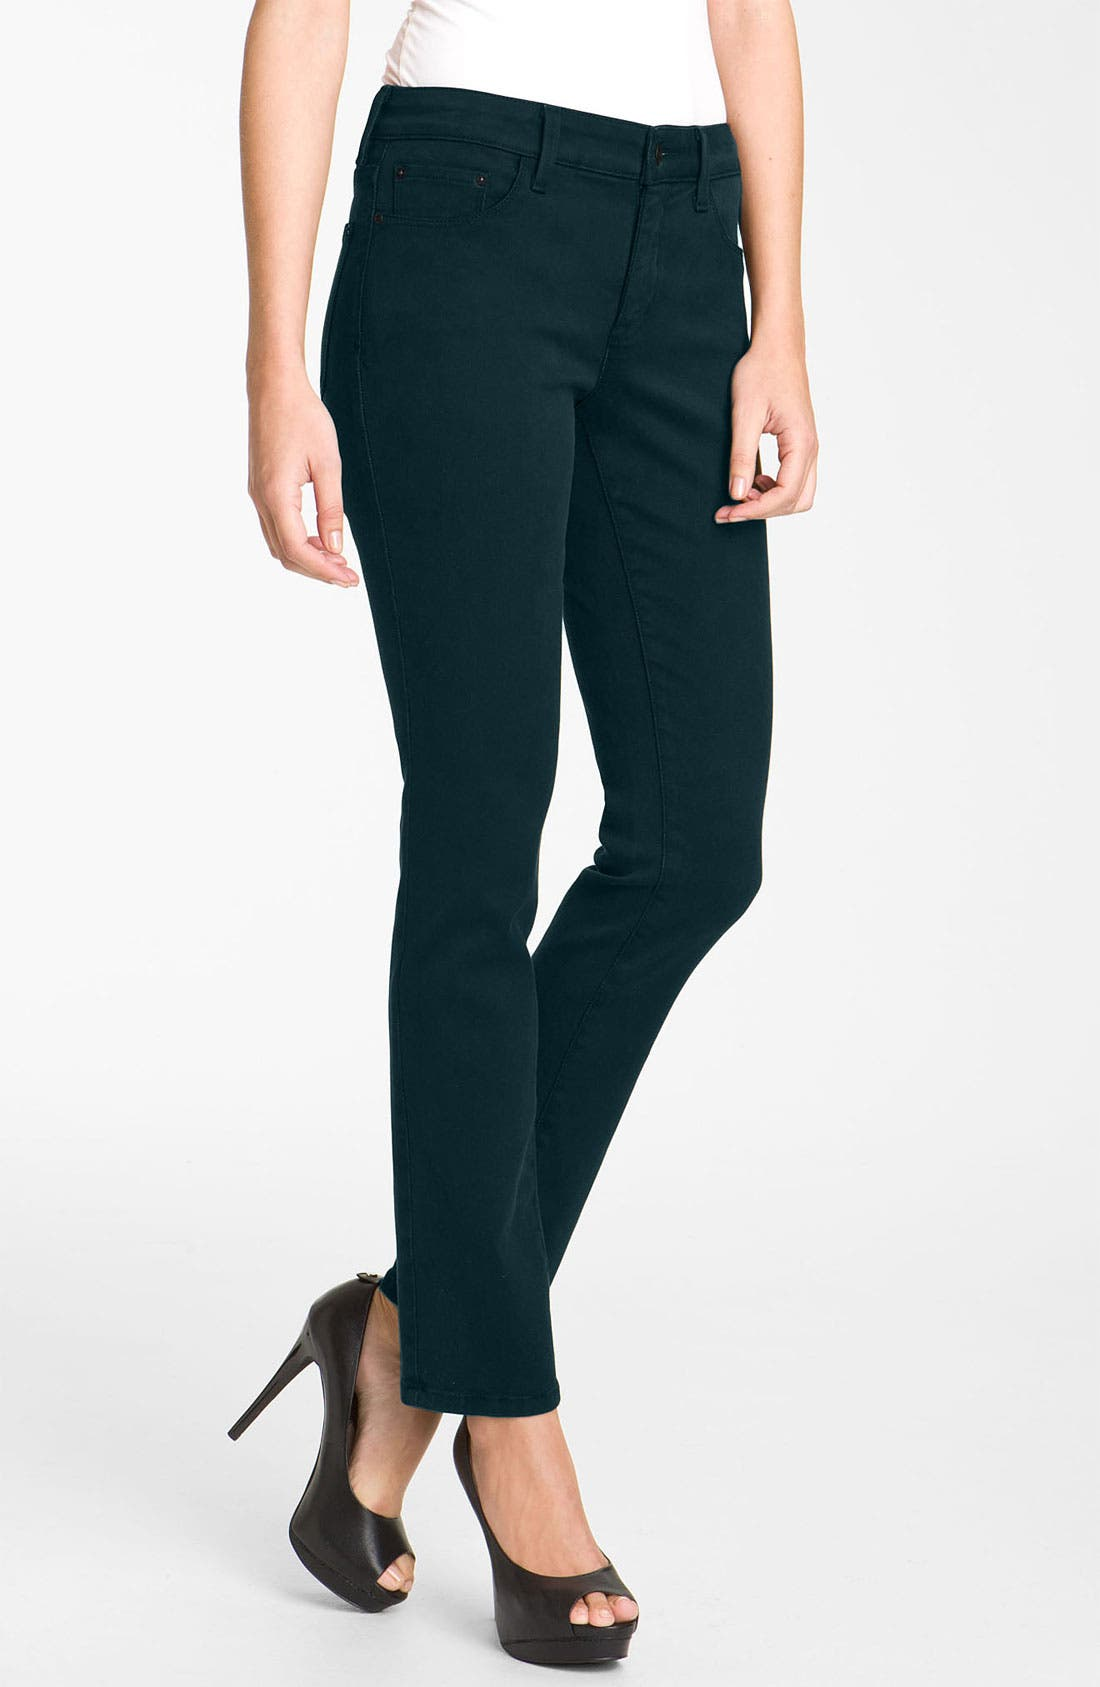 Main Image - NYDJ 'Jade' Denim Leggings